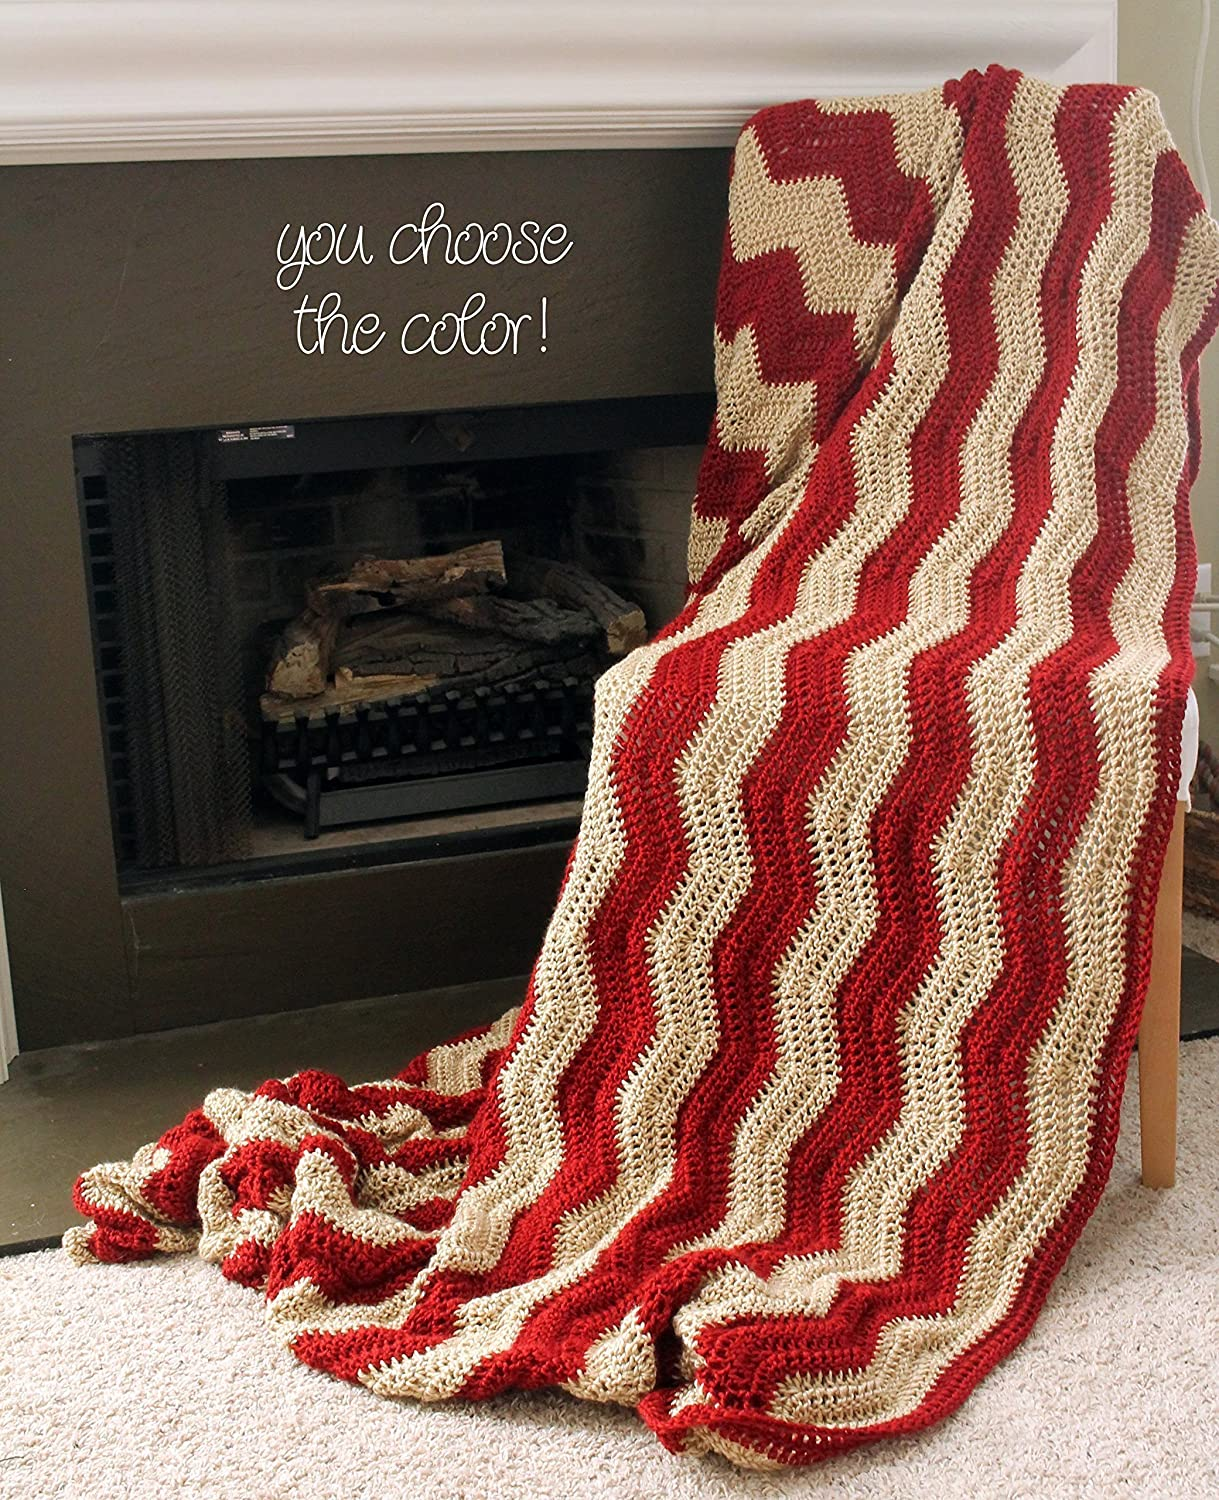 Image of Chevron Afghan Throw Blanket Crochet - Large Vertical Light Brown and Dark Red Striped Ripple Zig Zag - Made To Order Home and Kitchen